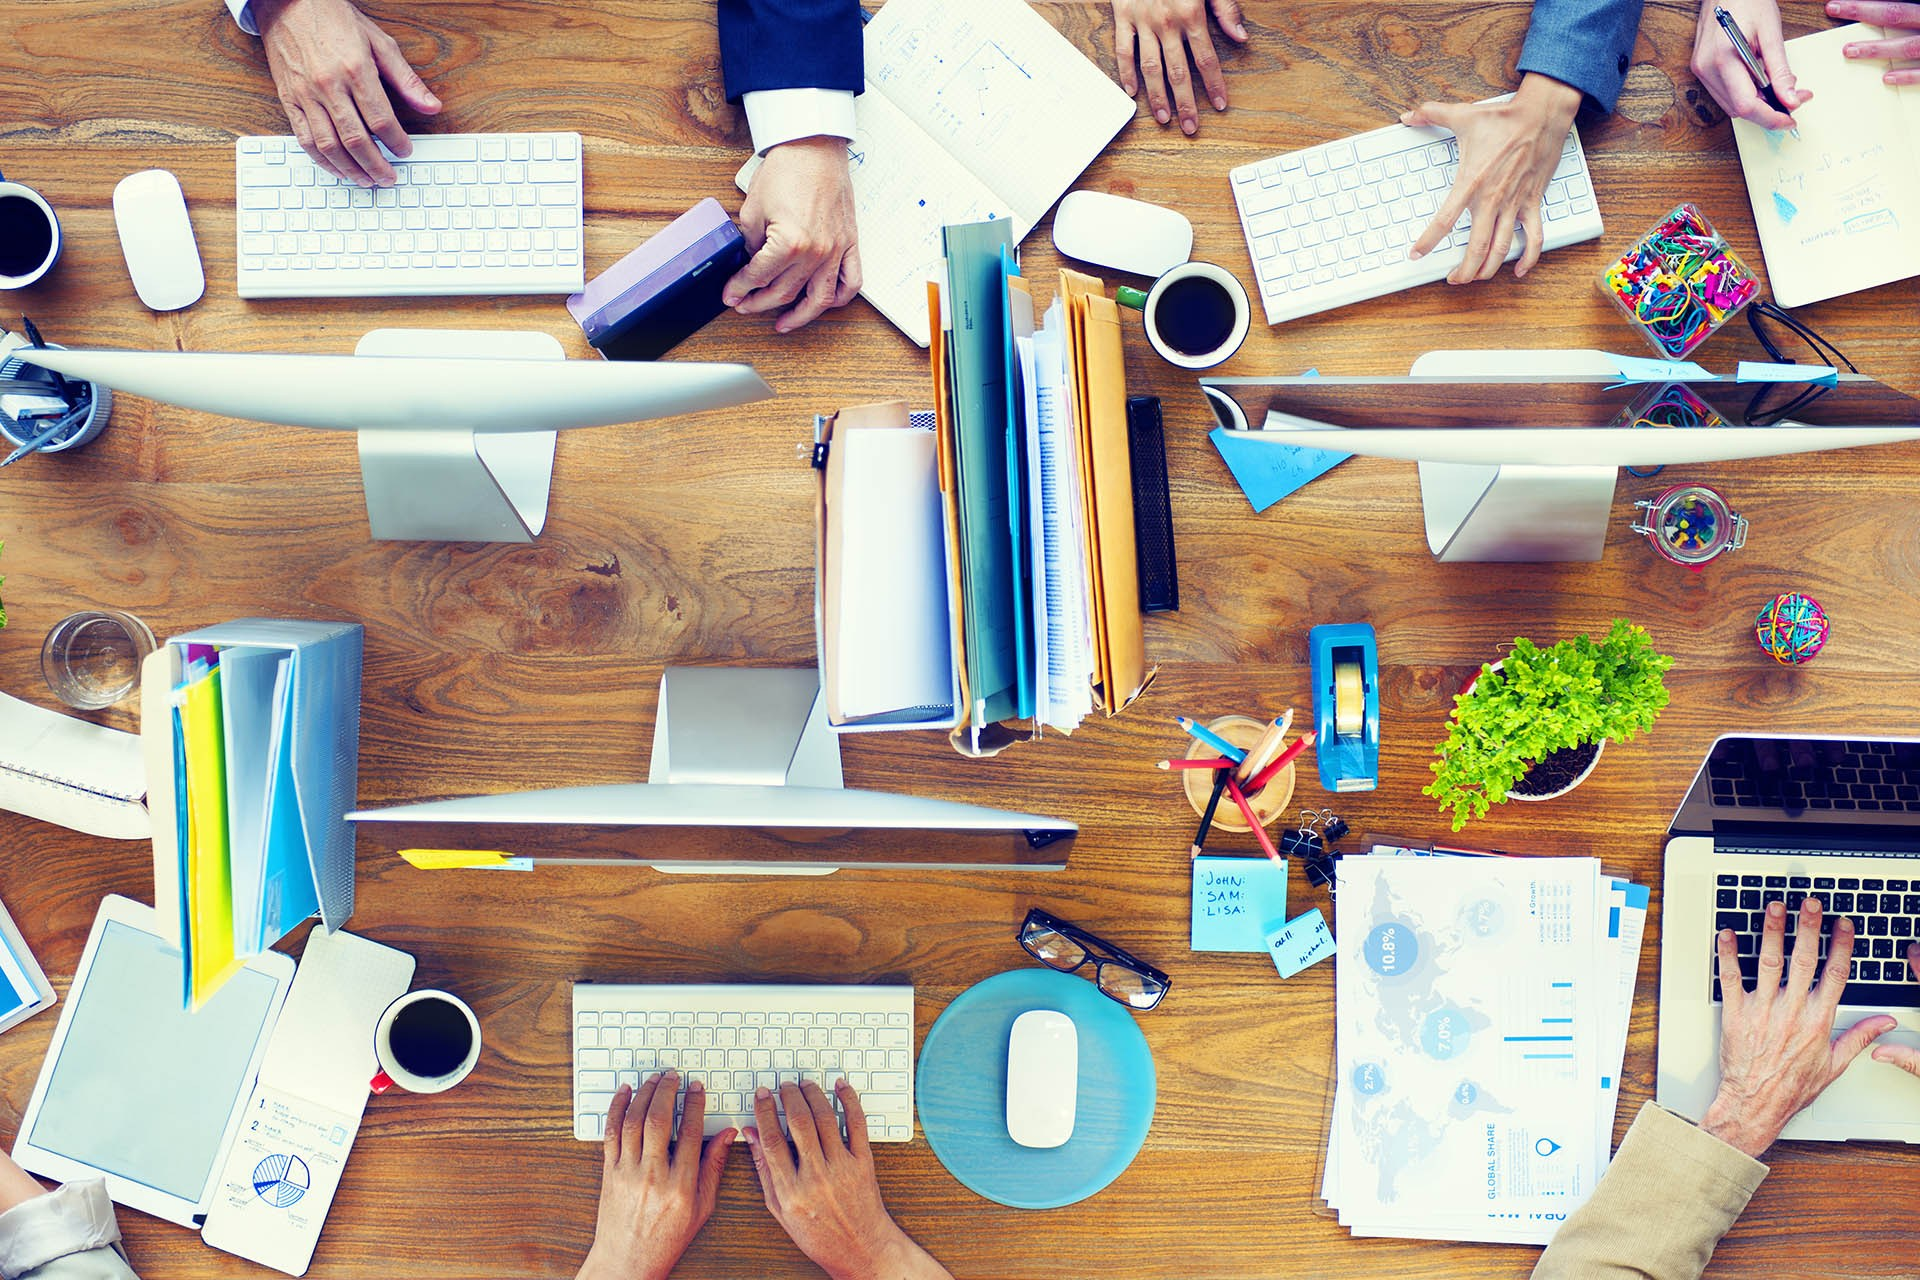 10 Questions To Ask An Employer Prior To Joining A Startup